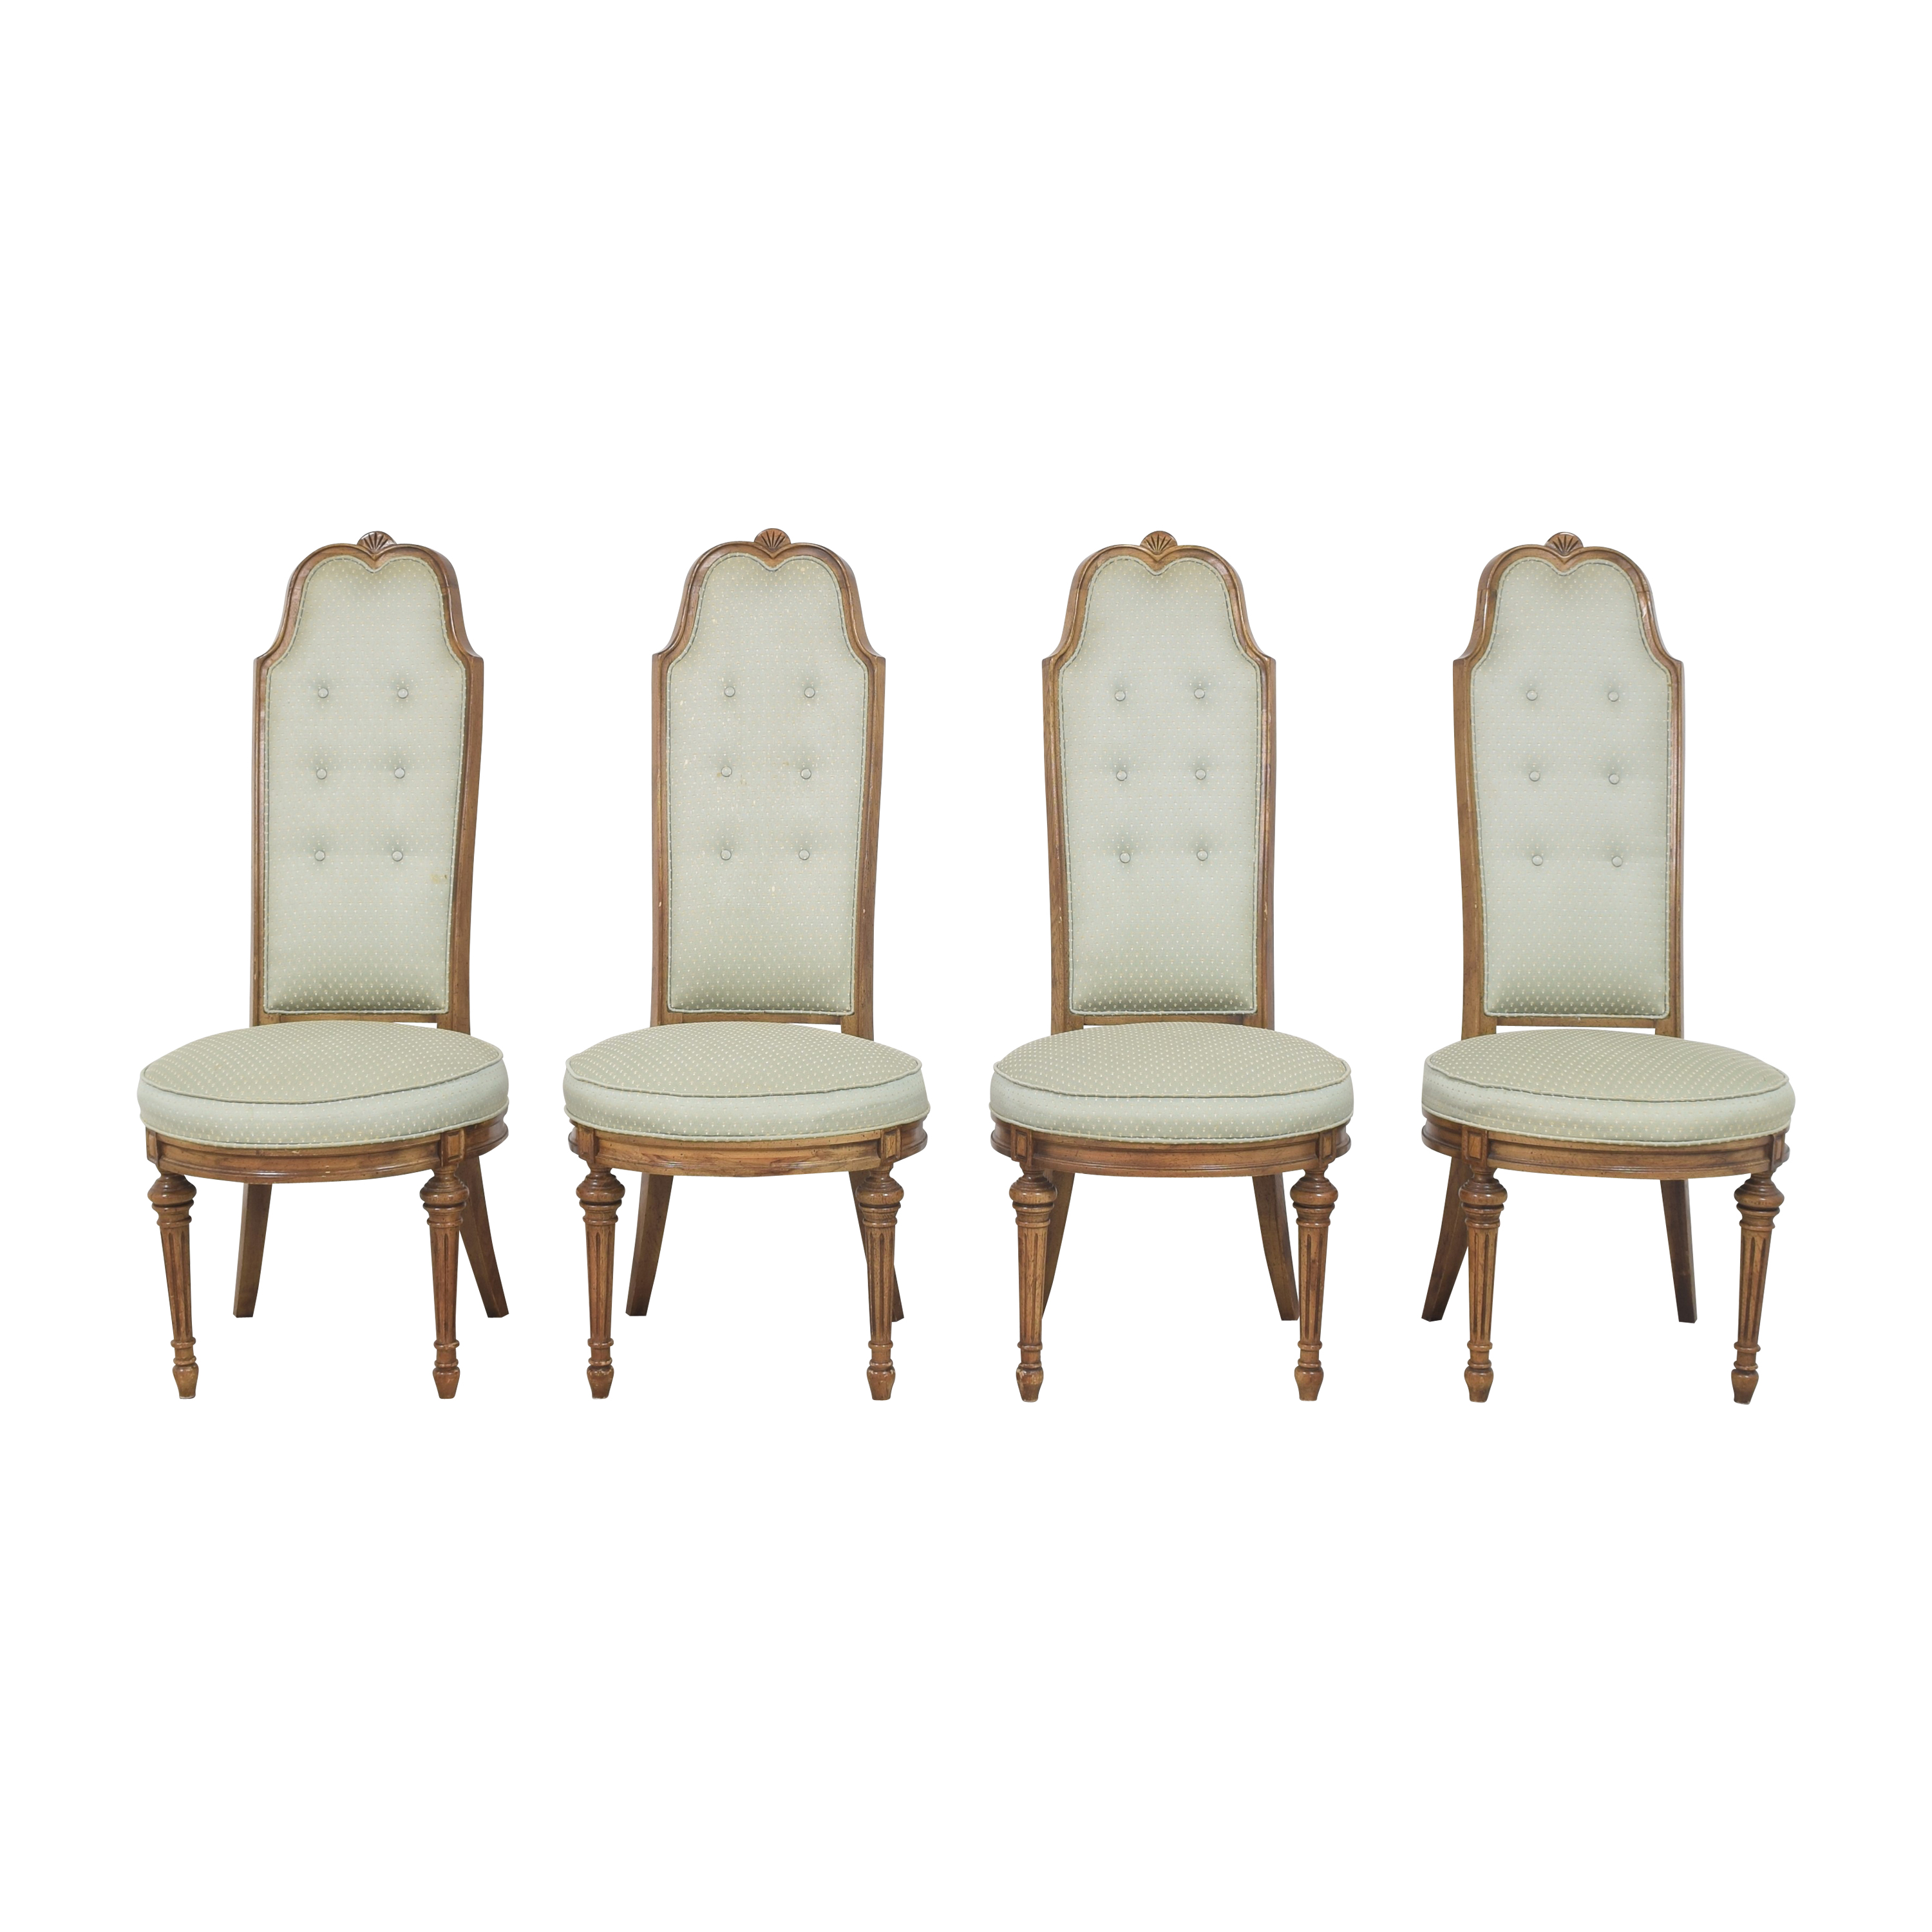 High Back Tufted Dining Chairs  ma